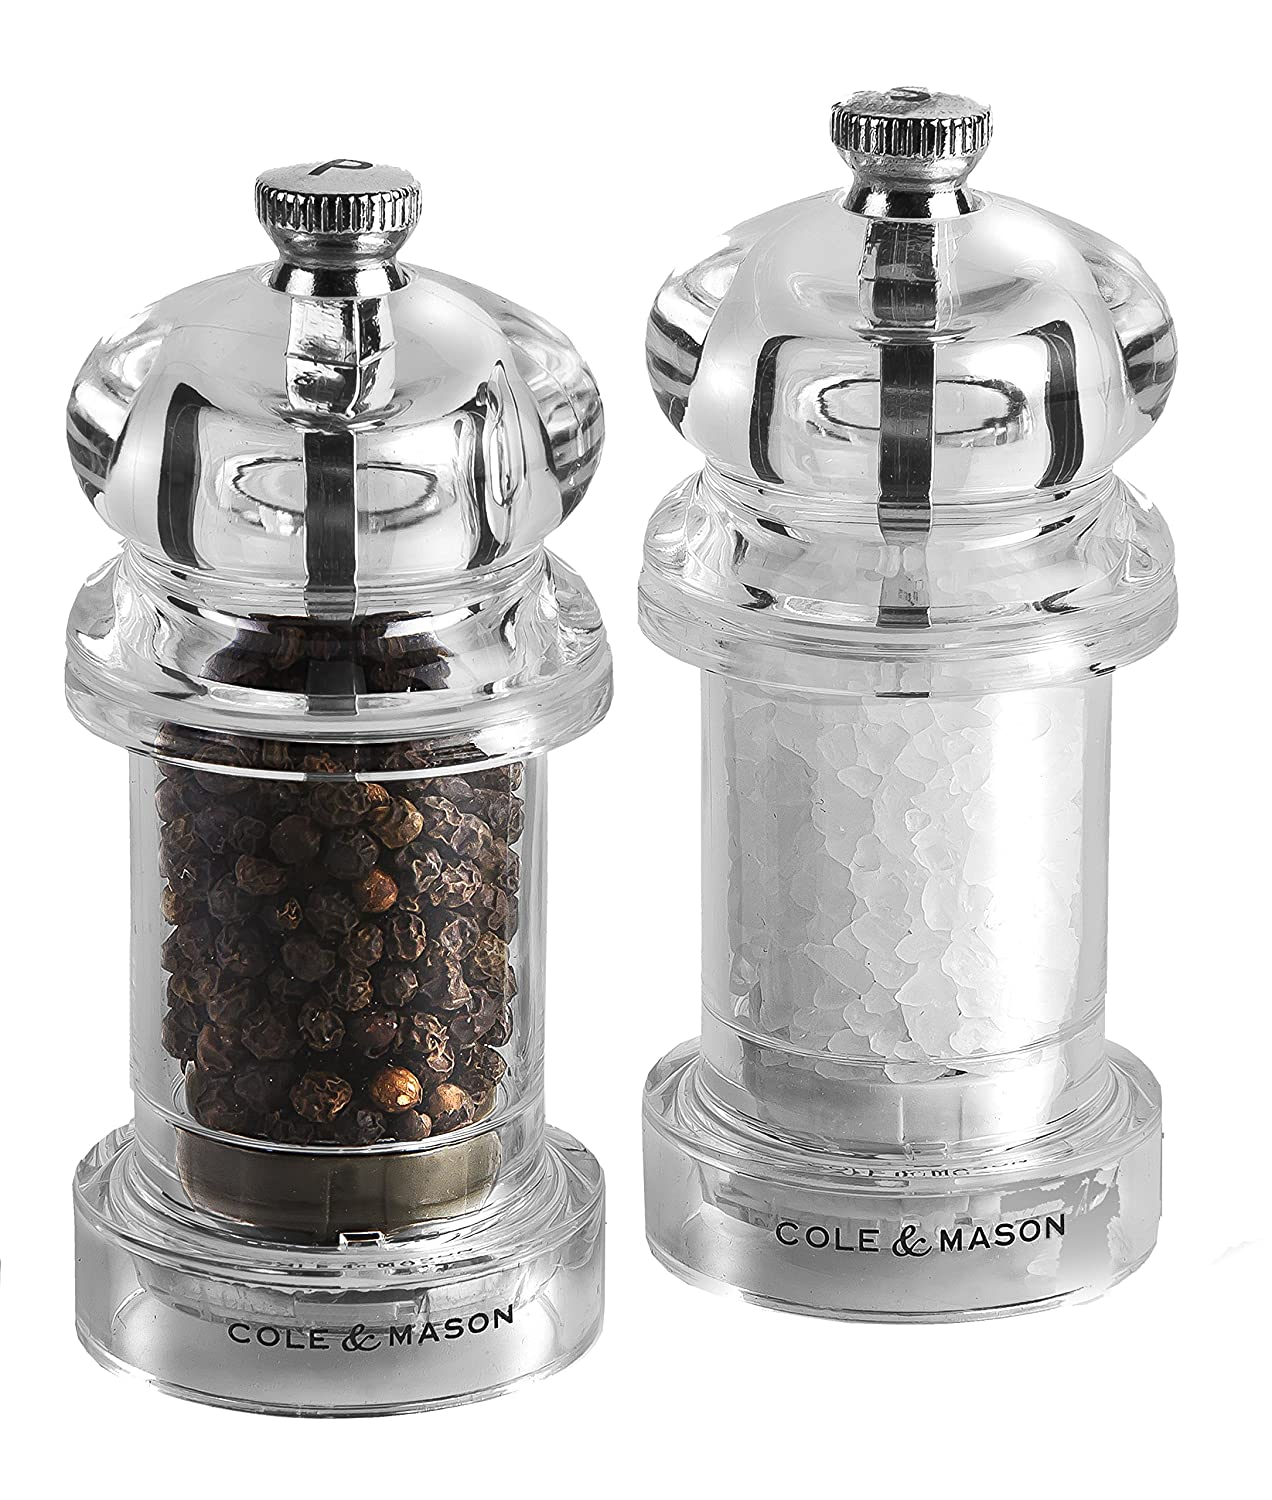 Cole & Mason Precision Grind 575 Salt and Pepper Mill Gift Set, Acrylic, Clear, 10.5 cm Dkb Household Uk Ltd H57508P